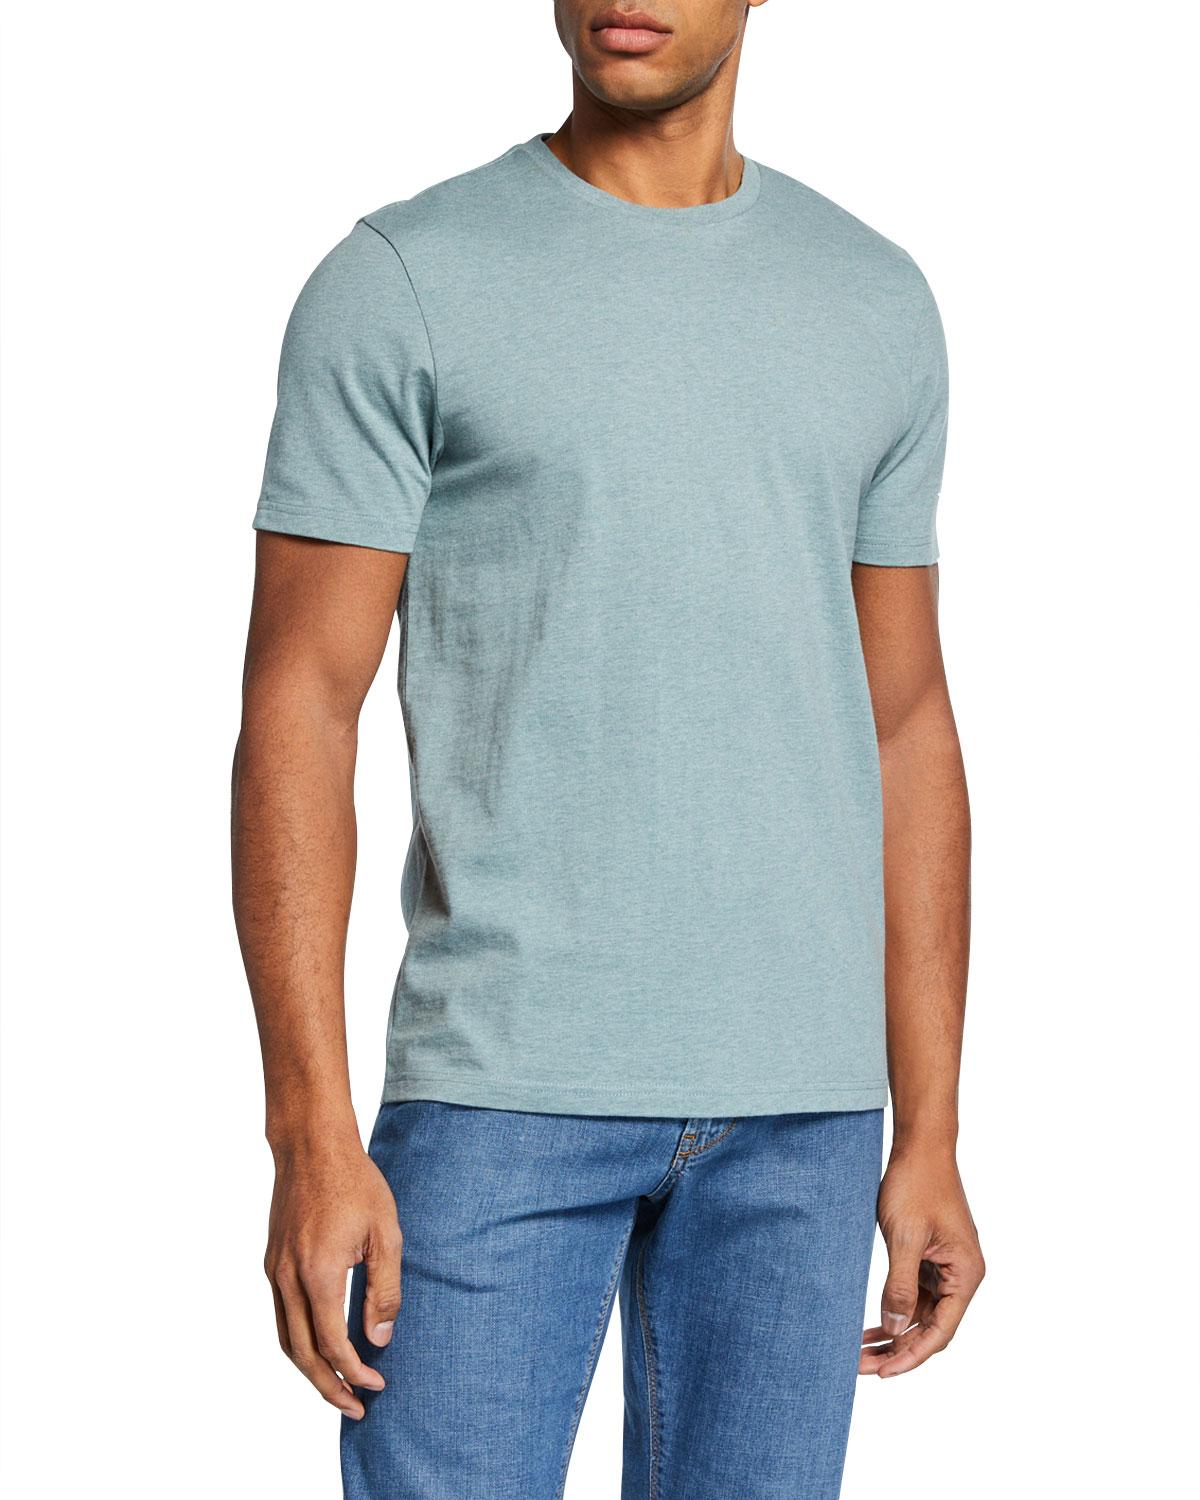 7b1020514f5d0 Lyst - Neiman Marcus Men s Heathered Cotton T-shirt in Green for Men